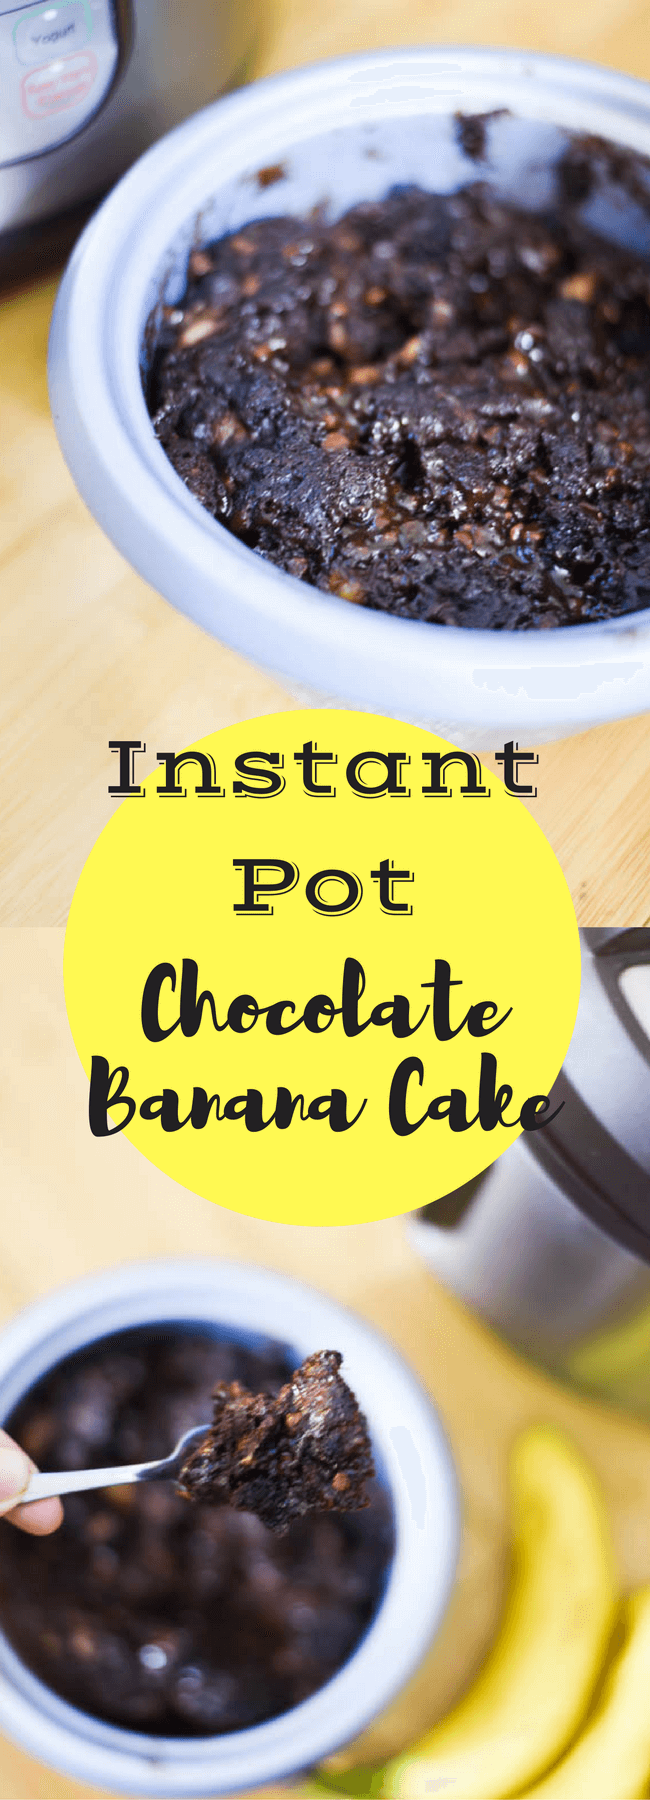 Instant Pot Chocolate Banana Cake | Instapot Dessert Recipes that will have your sweets ready in minutes!